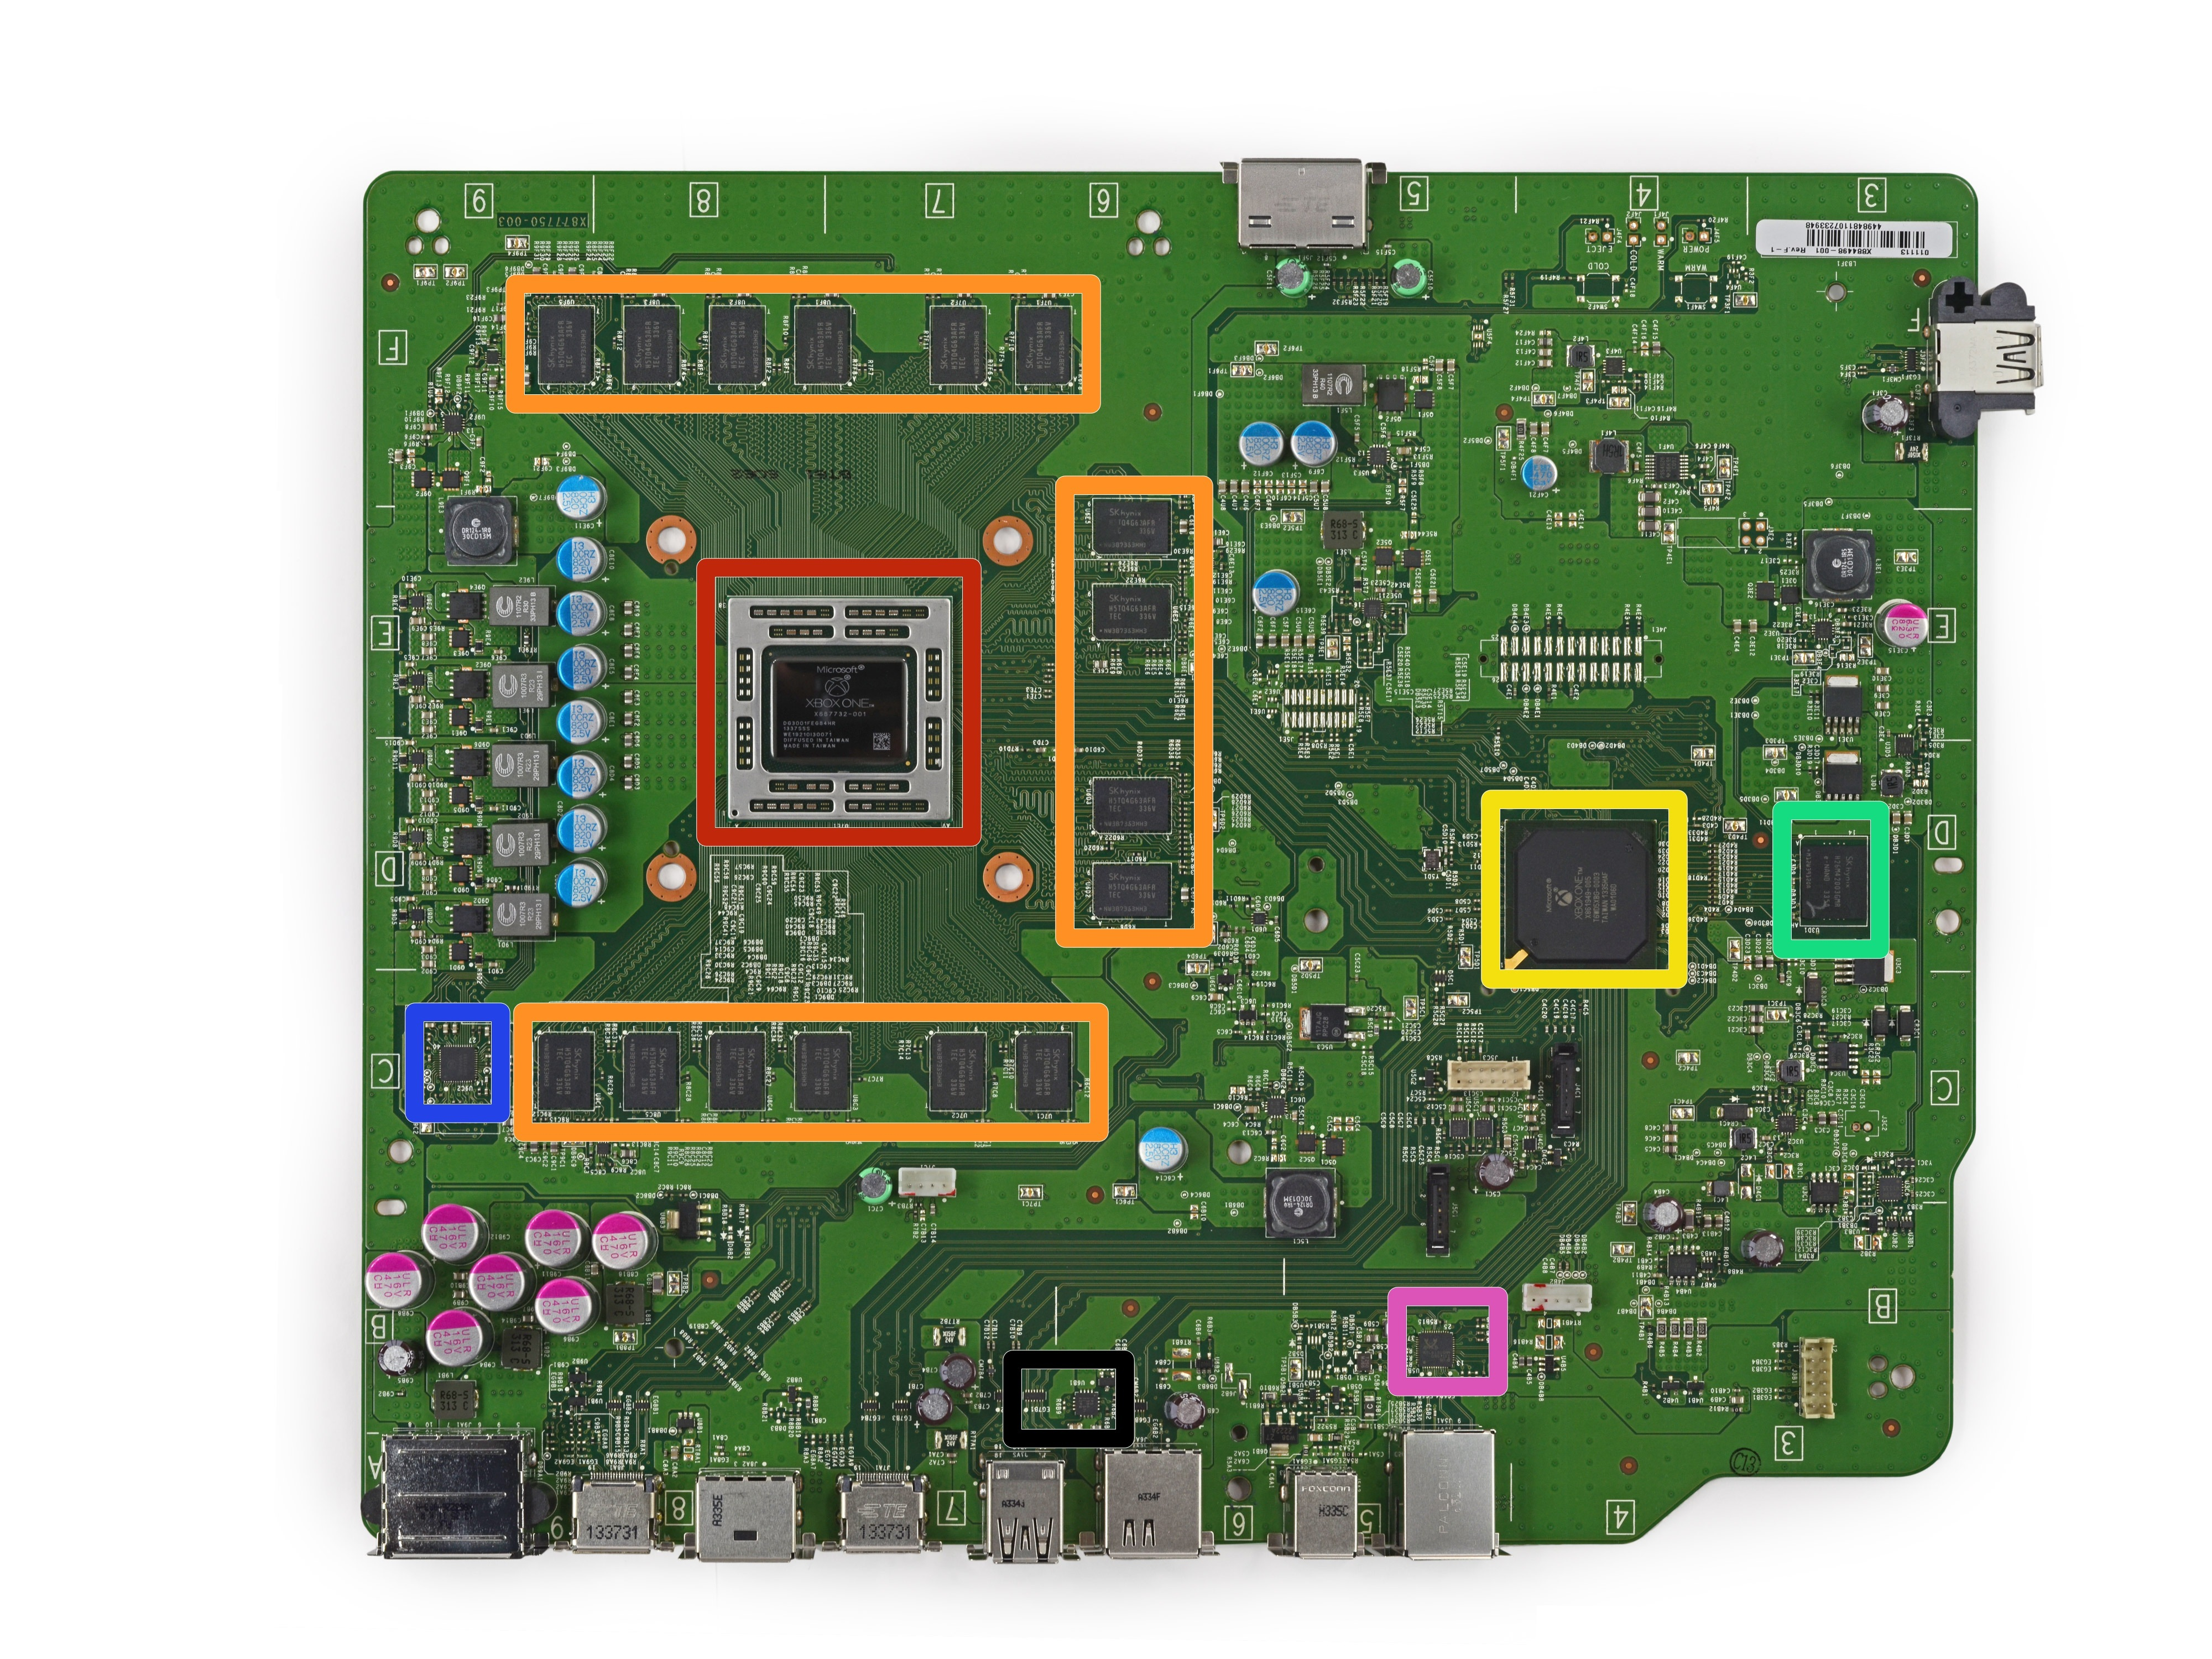 The system's motherboard. The CPU/GPU is outlined in red, and the RAM is highlighted in orange. The green square outlines the system's 8GB of eMMC NAND, which is used for caching.